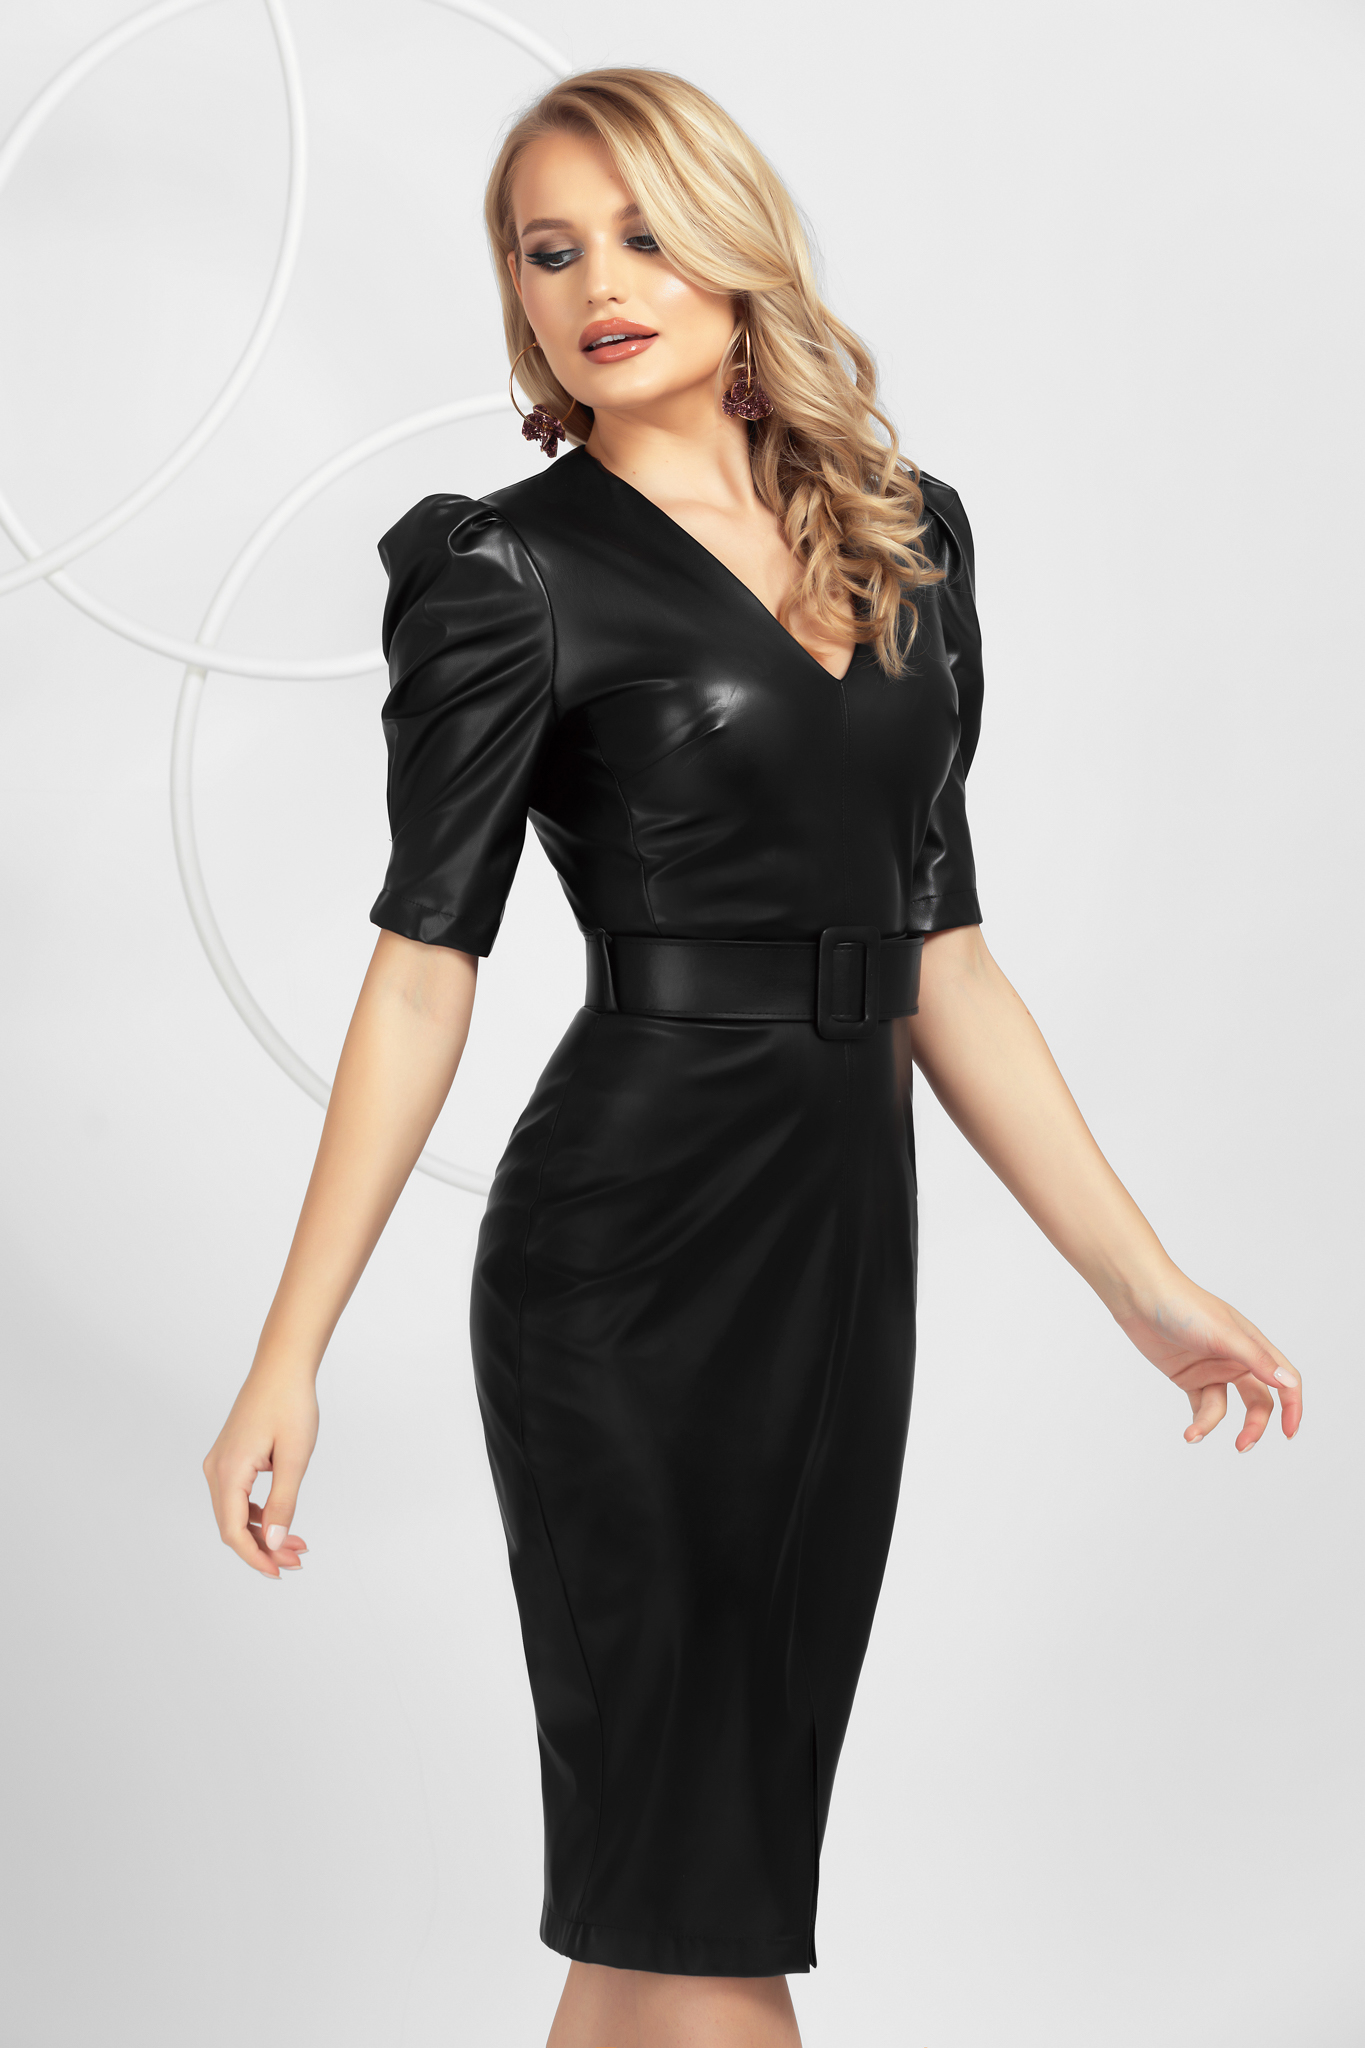 Black pencil from ecological leather dress top wrinkled sleeves frontal slit